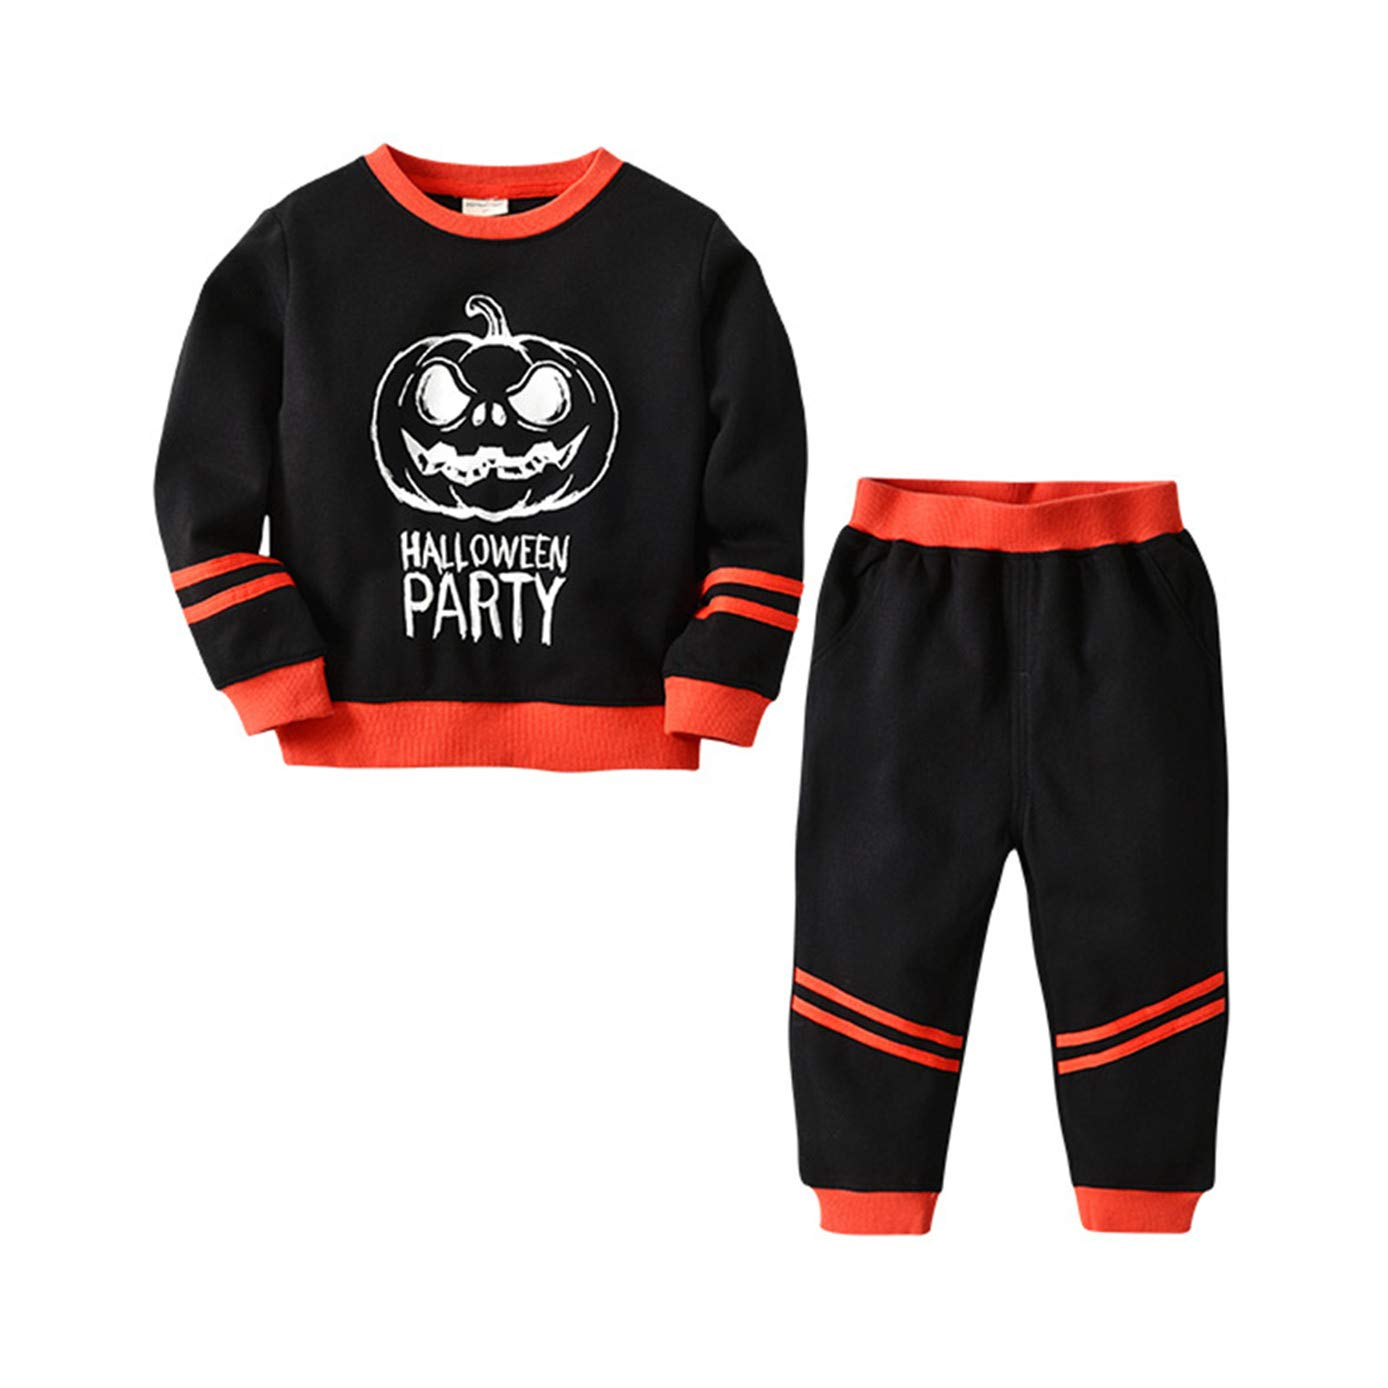 Toddler Baby Boy Girl Long Sleeve Cartoon Car Pirnt Cotton Clothing Set 1-5t Red